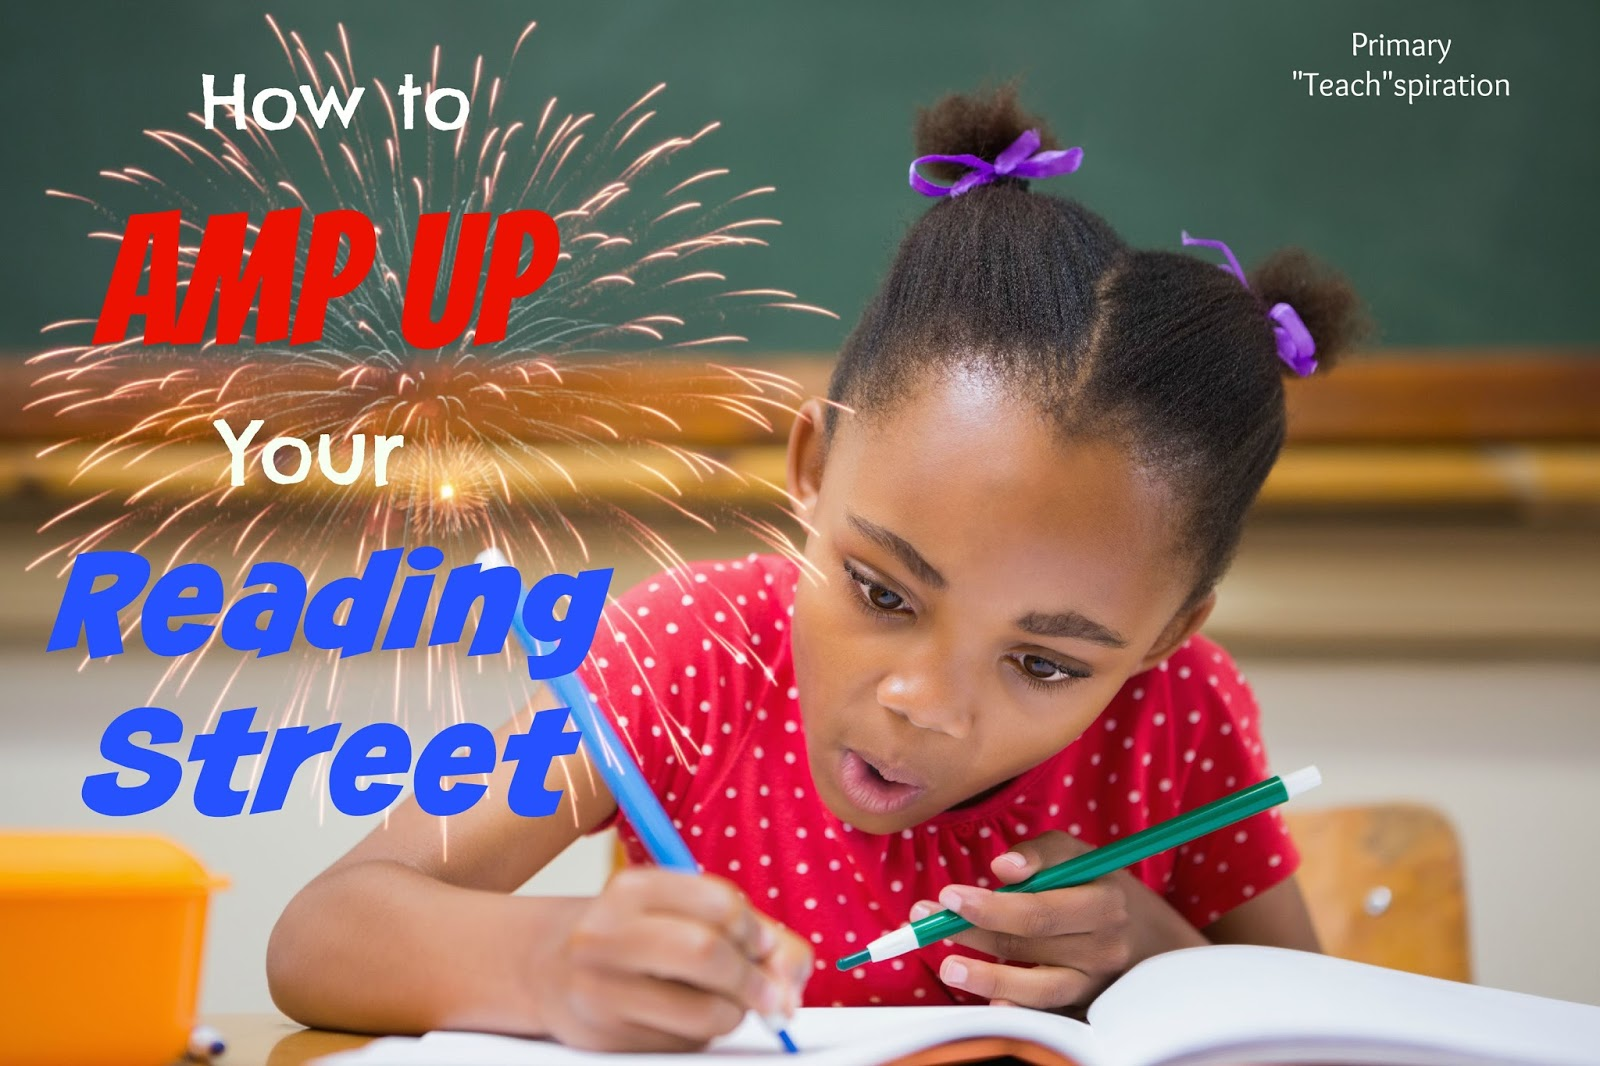 How to Amp Up Your Reading Street - Primary Teachspiration